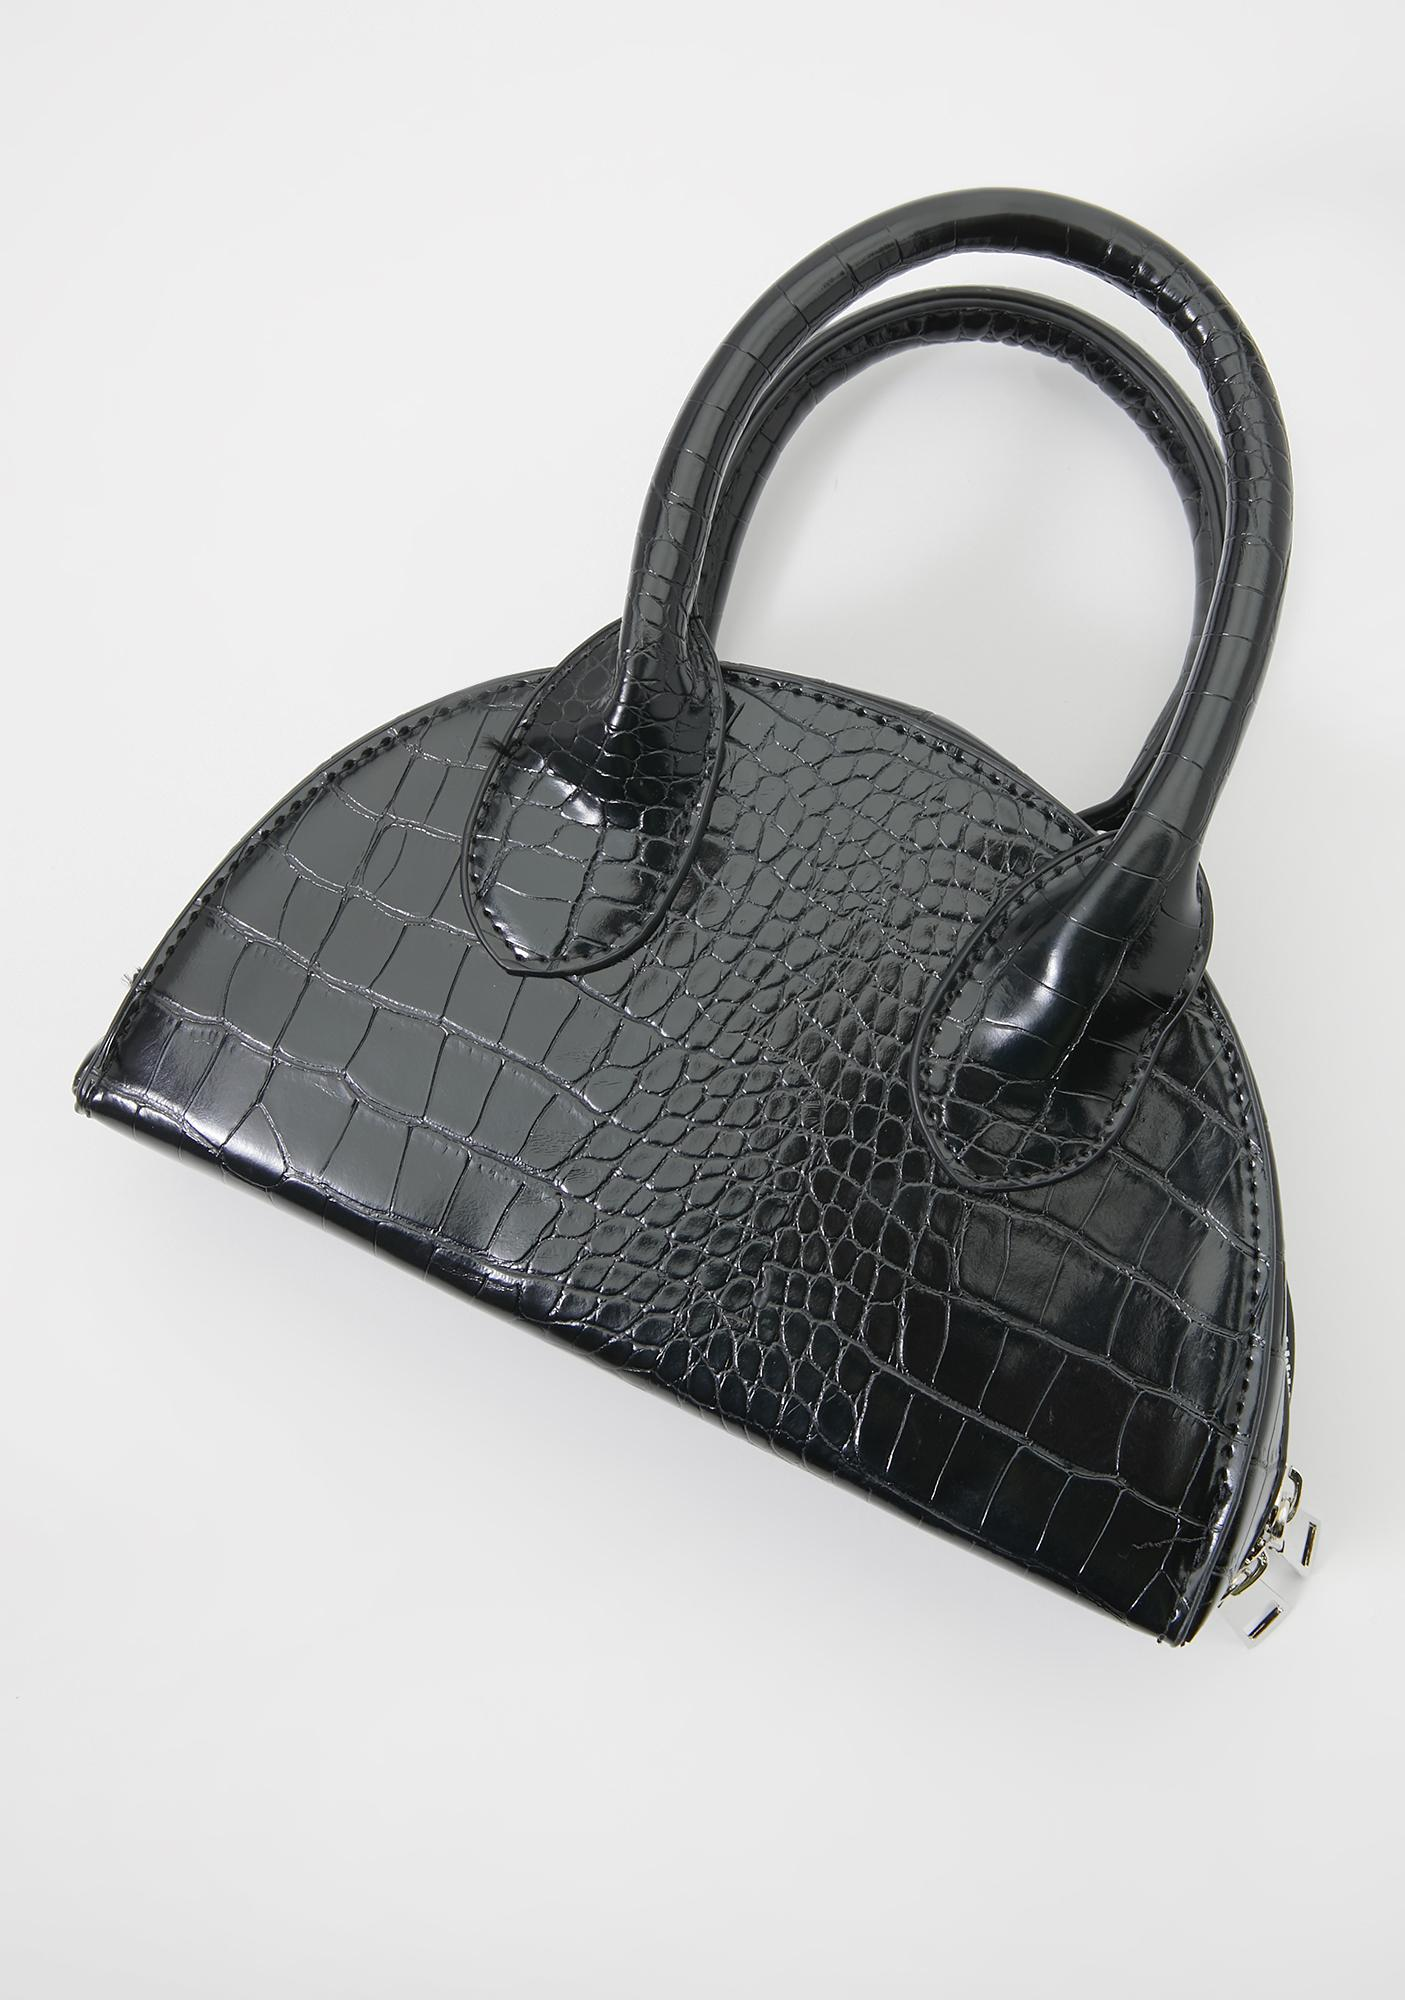 Wicked Will Crocodile Handbag